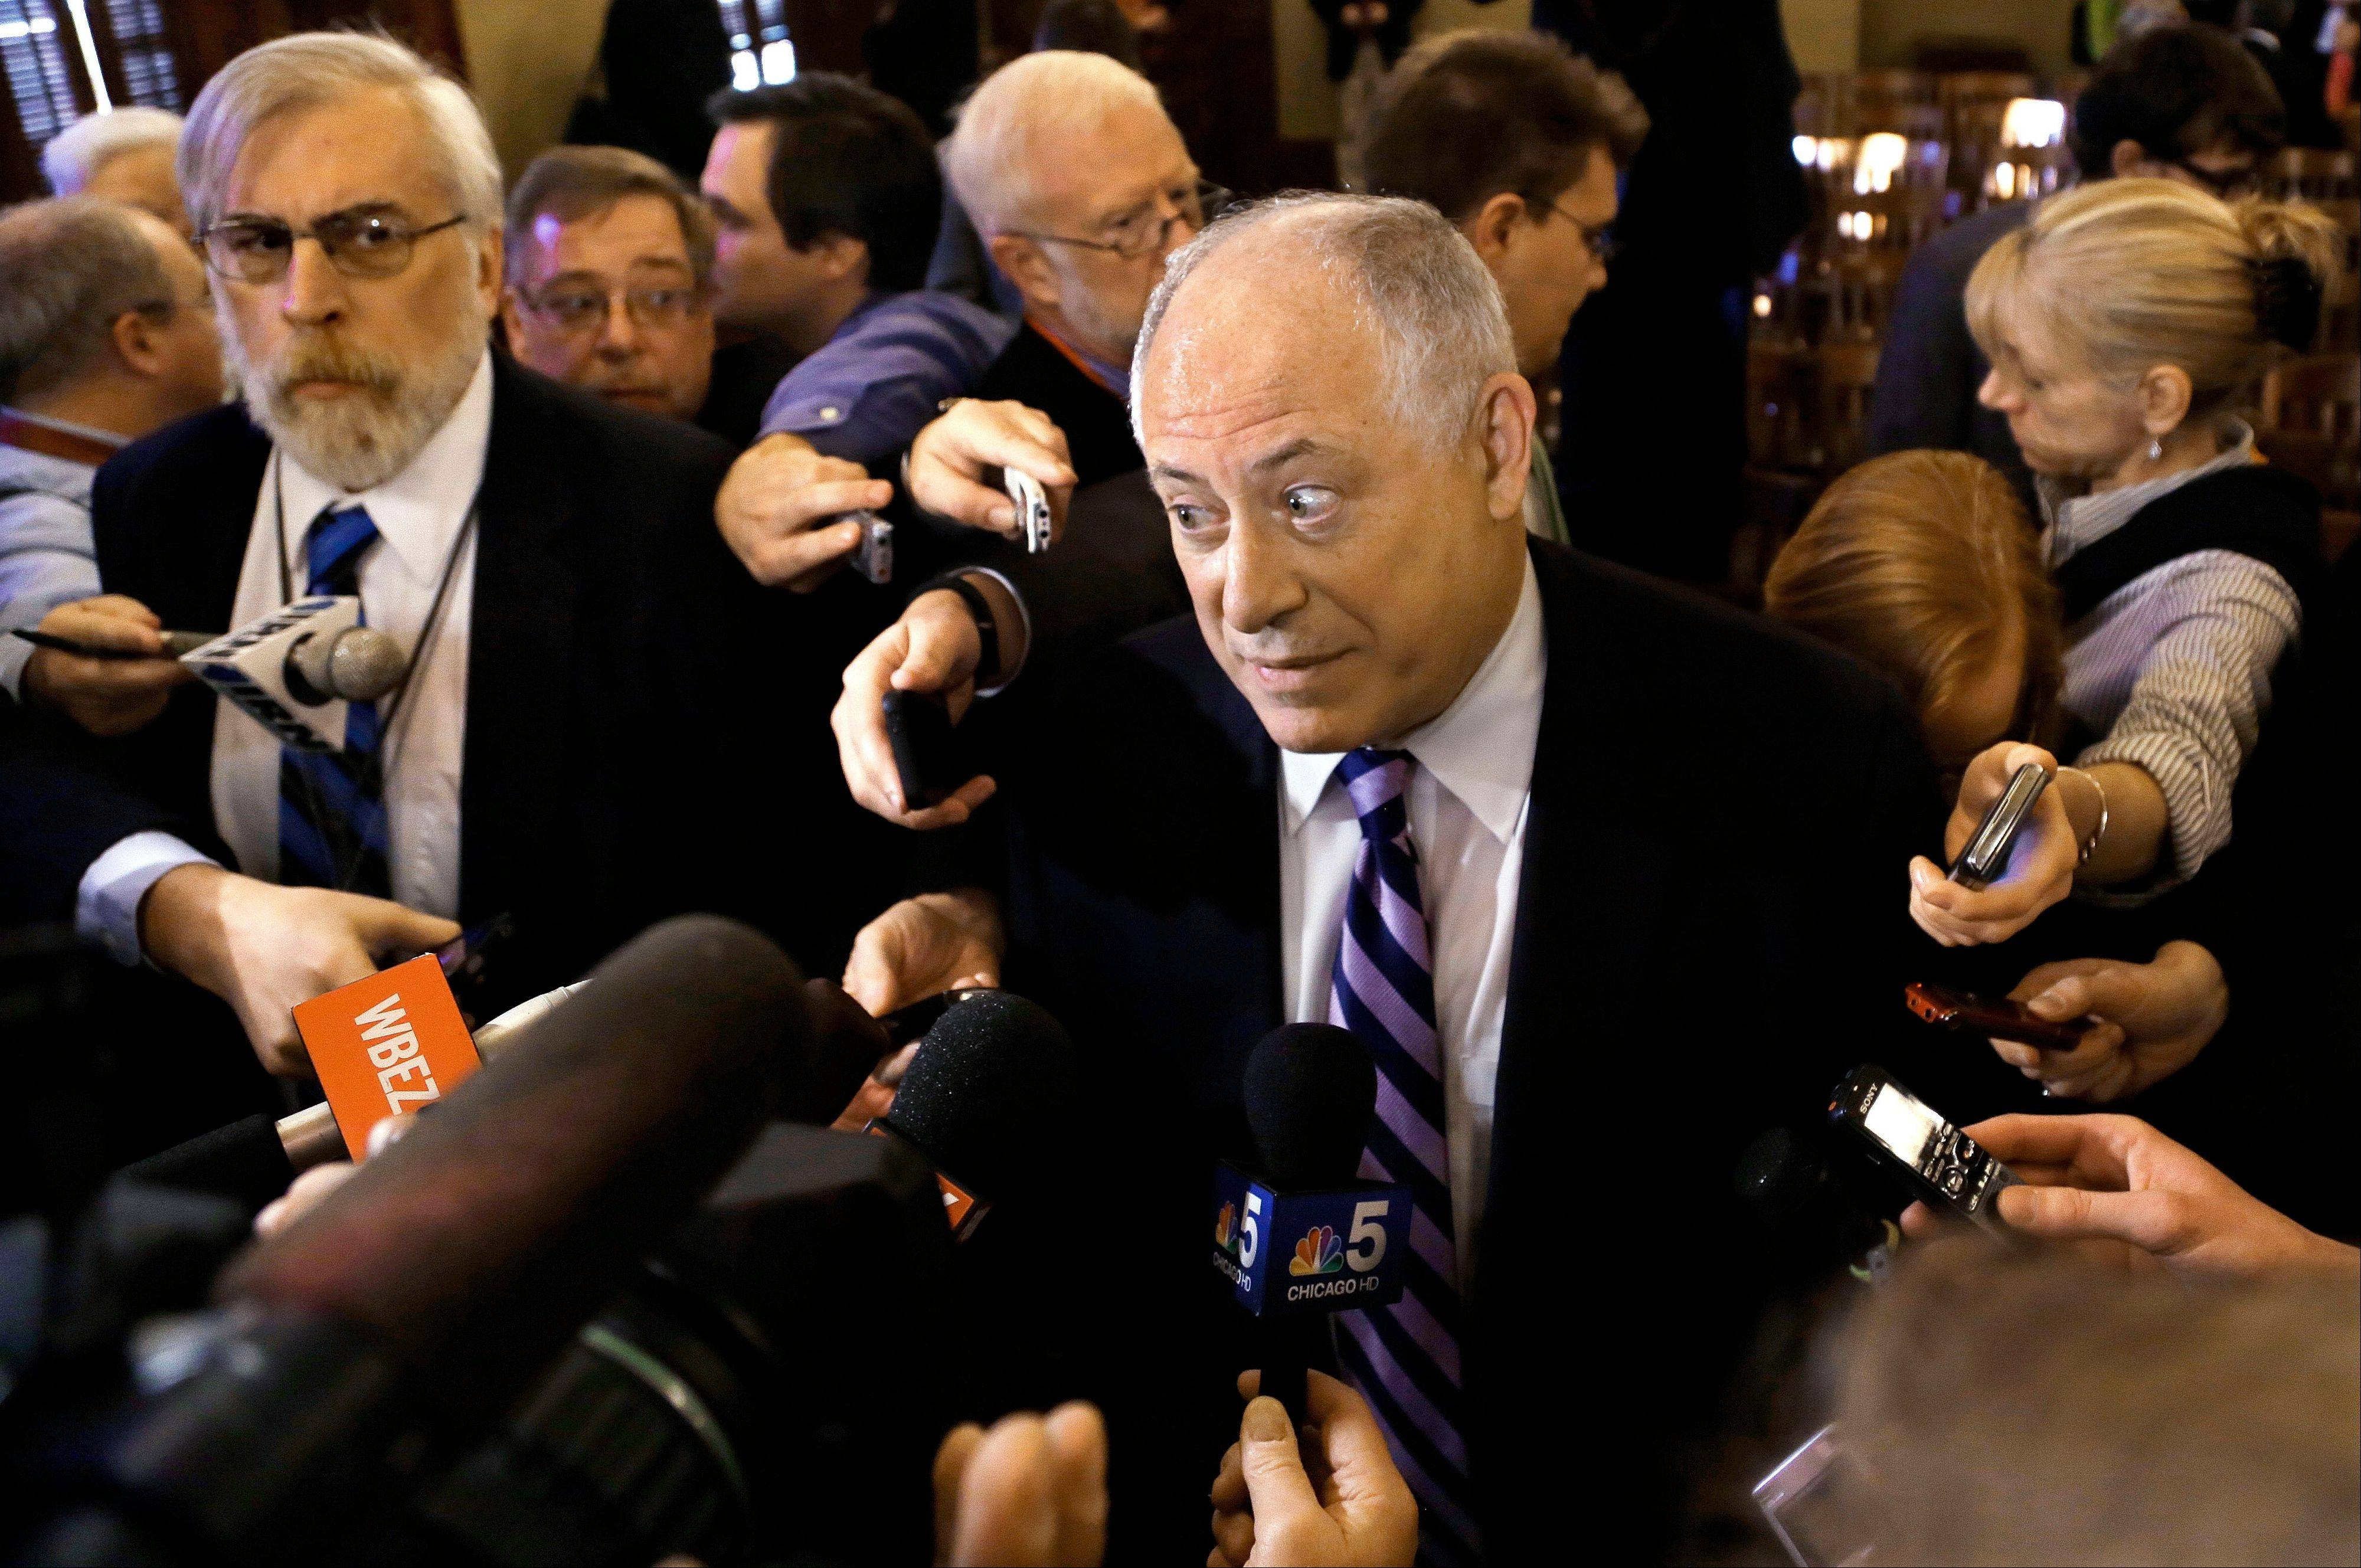 Illinois Gov. Pat Quinn is surrounded by reporters after testifying at a House committee hearing on pension reform at the Illinois State Capitol in Springfield earlier this week.